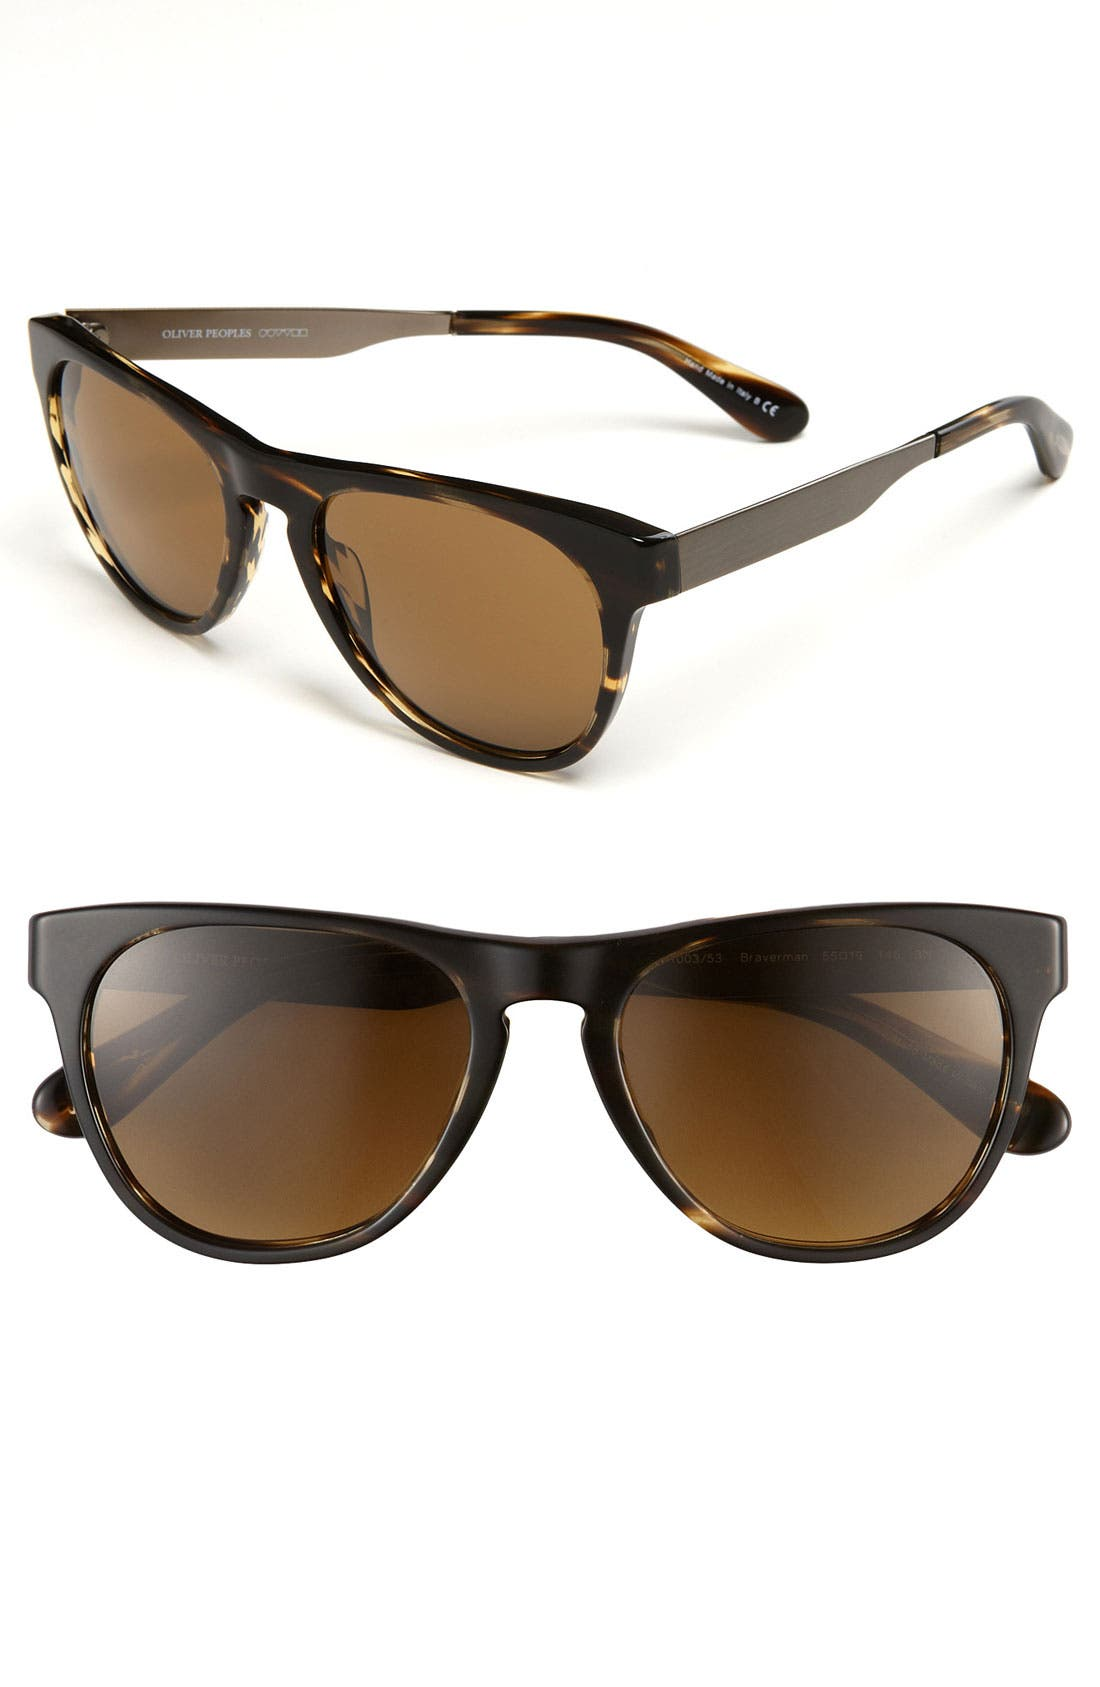 Main Image - Oliver Peoples 55mm Sunglasses